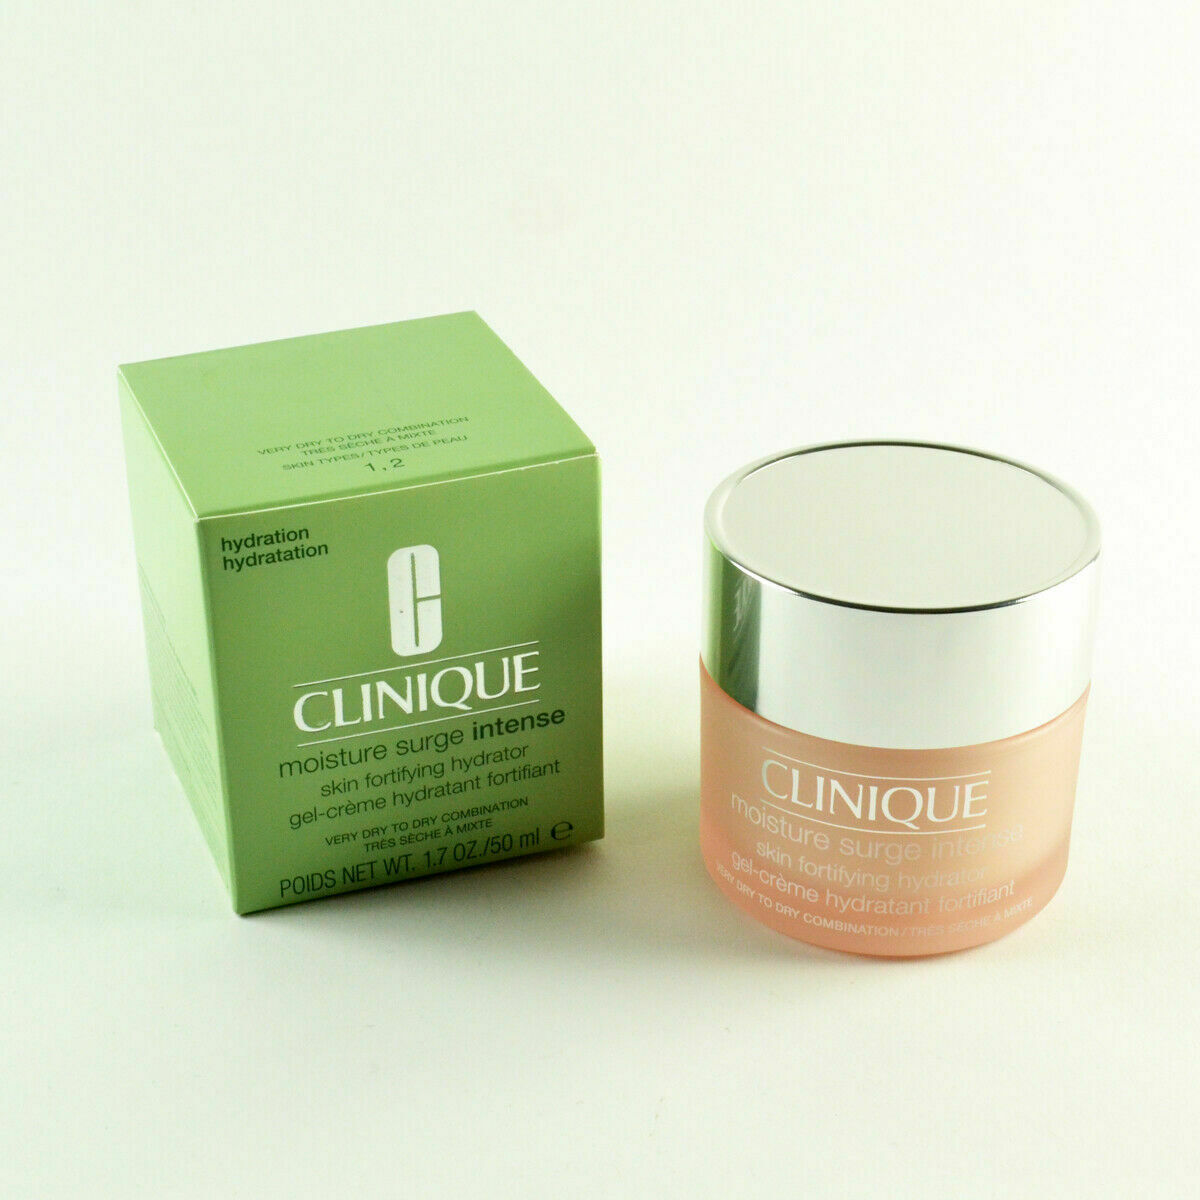 Clinique Moisture Surge Intense Skin Fortifying Hydrator - Size 1.7 Oz 50mL